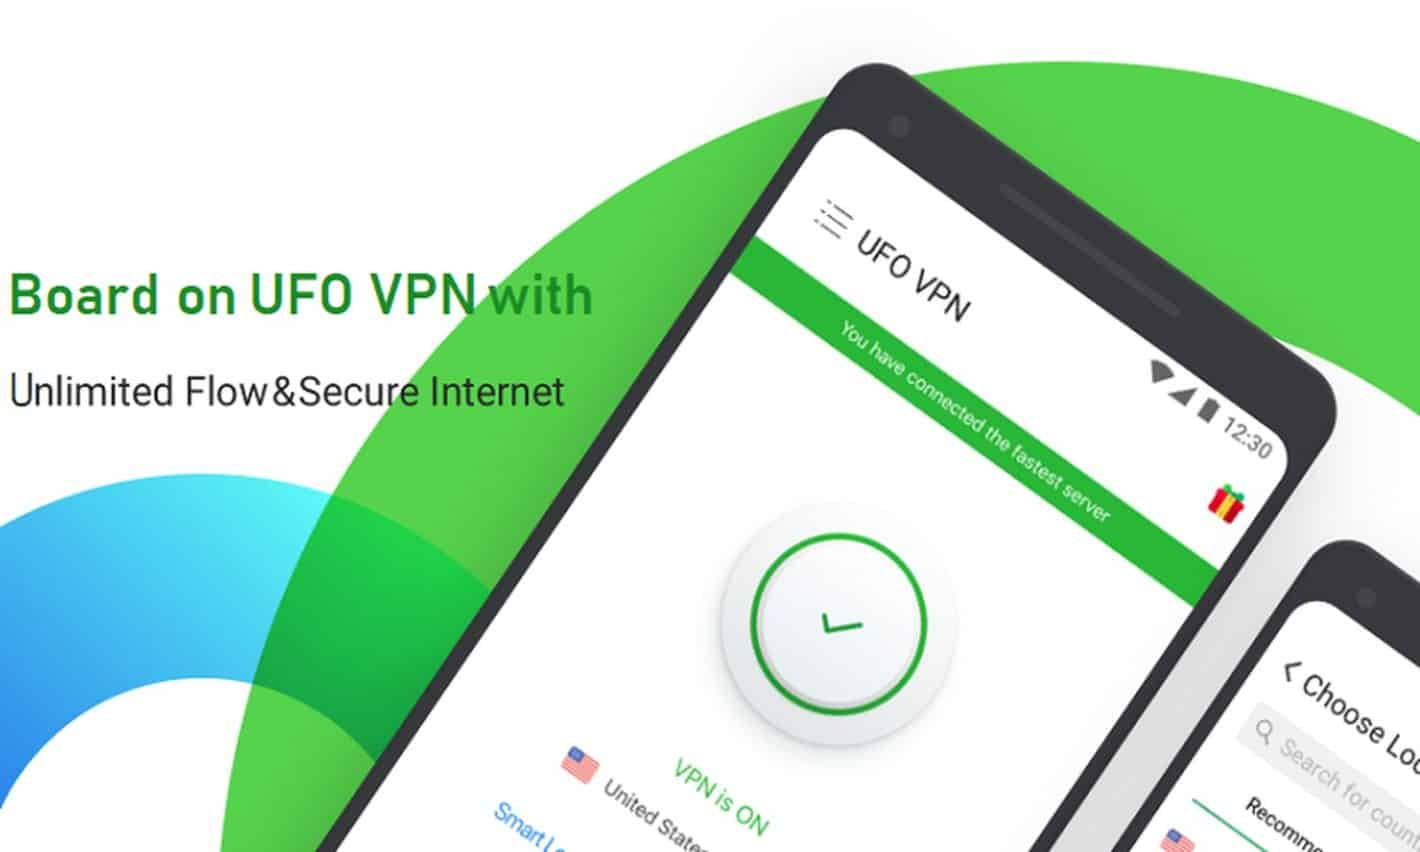 UFO VPN users at risk